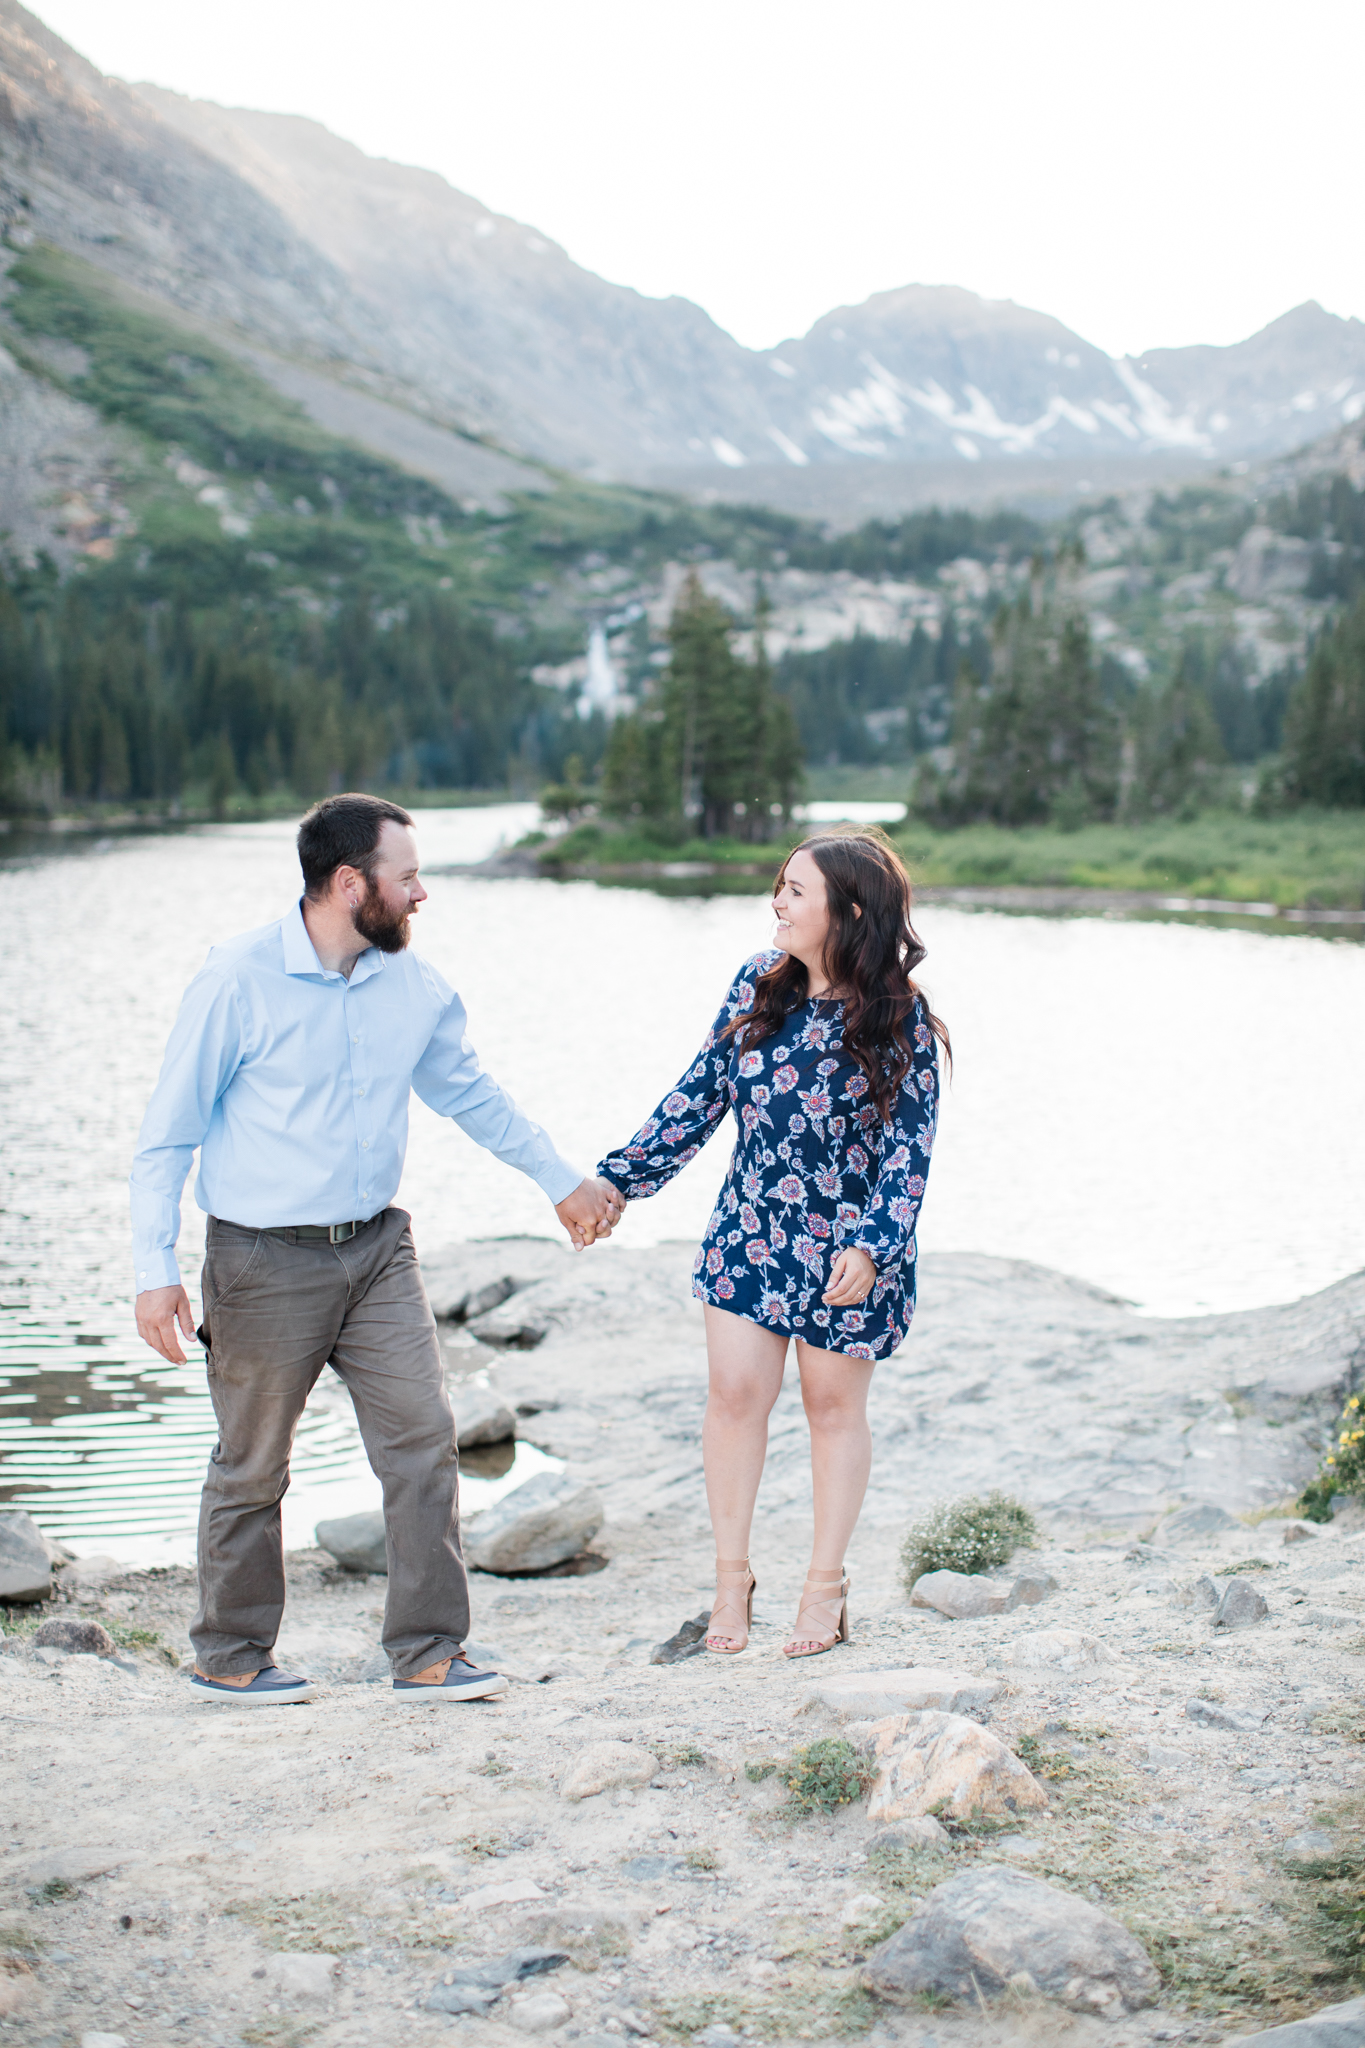 Ally_Joe_Breckenridge_Engagement_Session_24